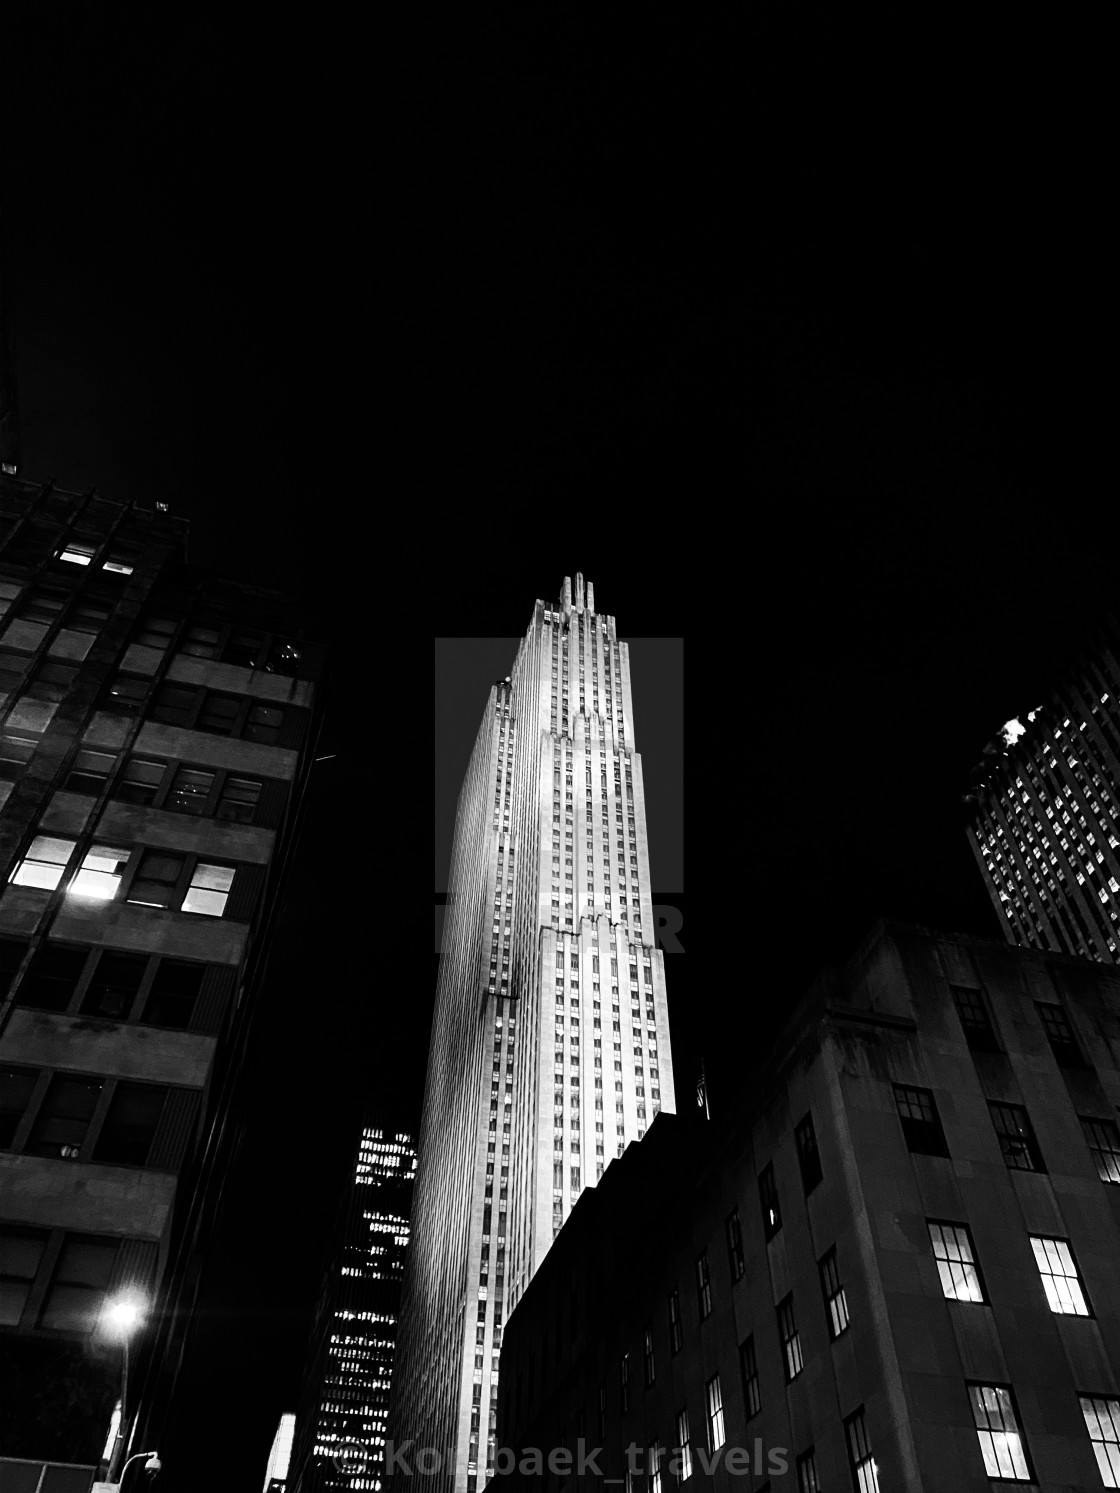 """The Rock, New York, by night"" stock image"